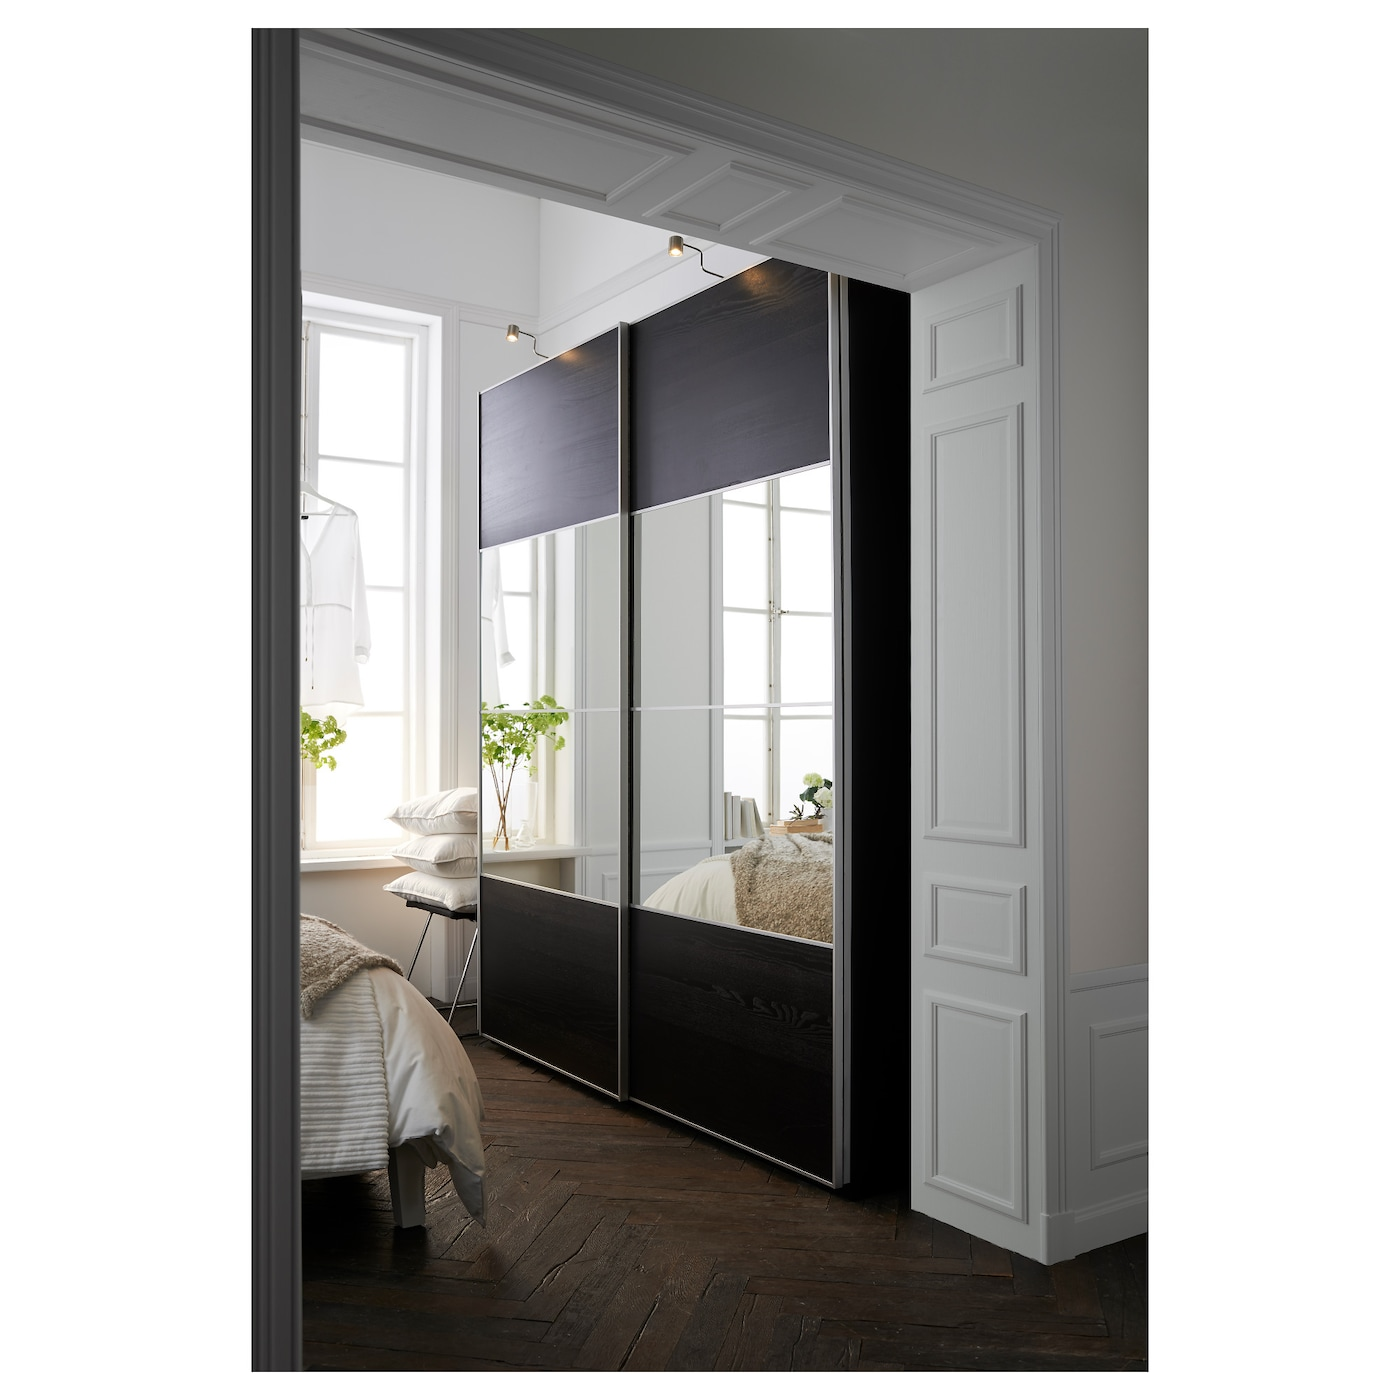 Pax wardrobe black brown auli ilseng 200x66x236 cm ikea for Armoire portes coulissantes